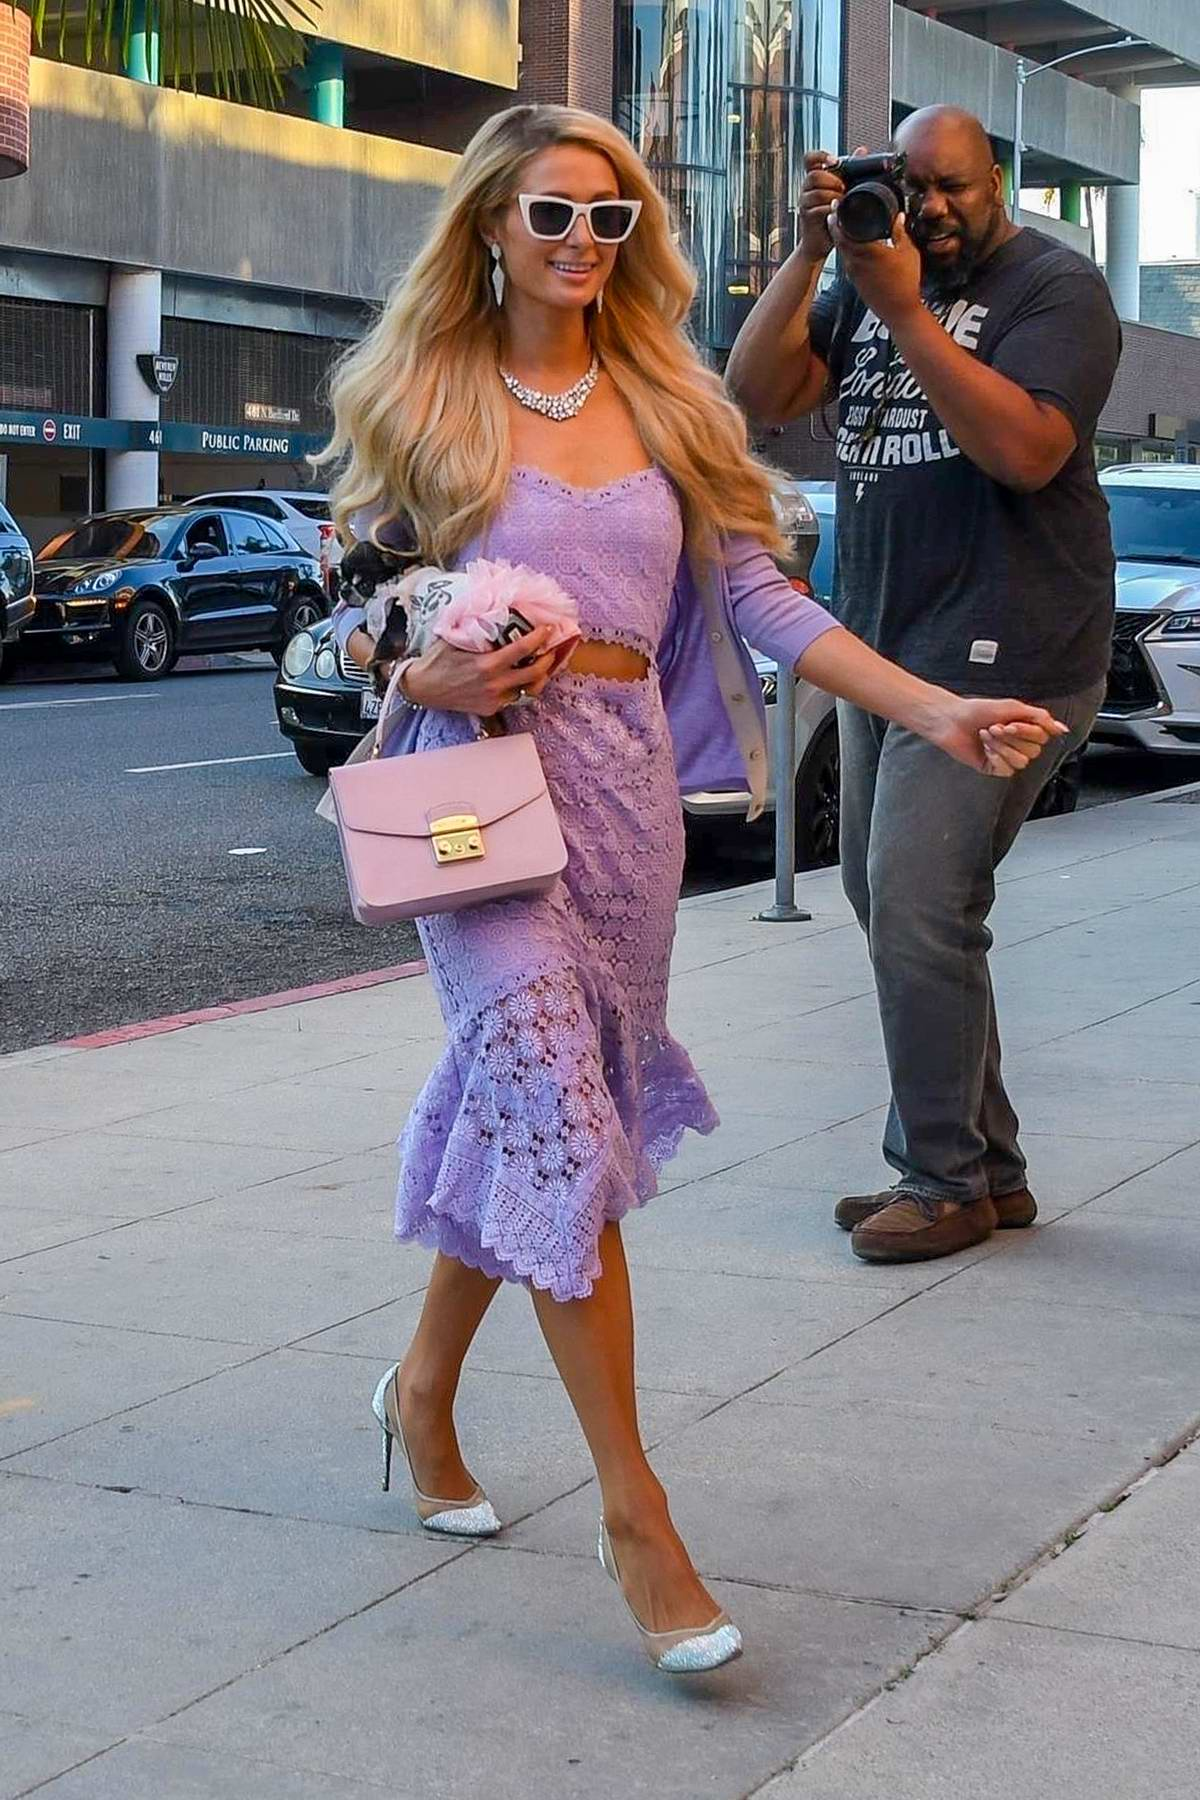 Paris Hilton arrives in style in her holographic pink BMW at Anastasia salon in Beverly Hills, California